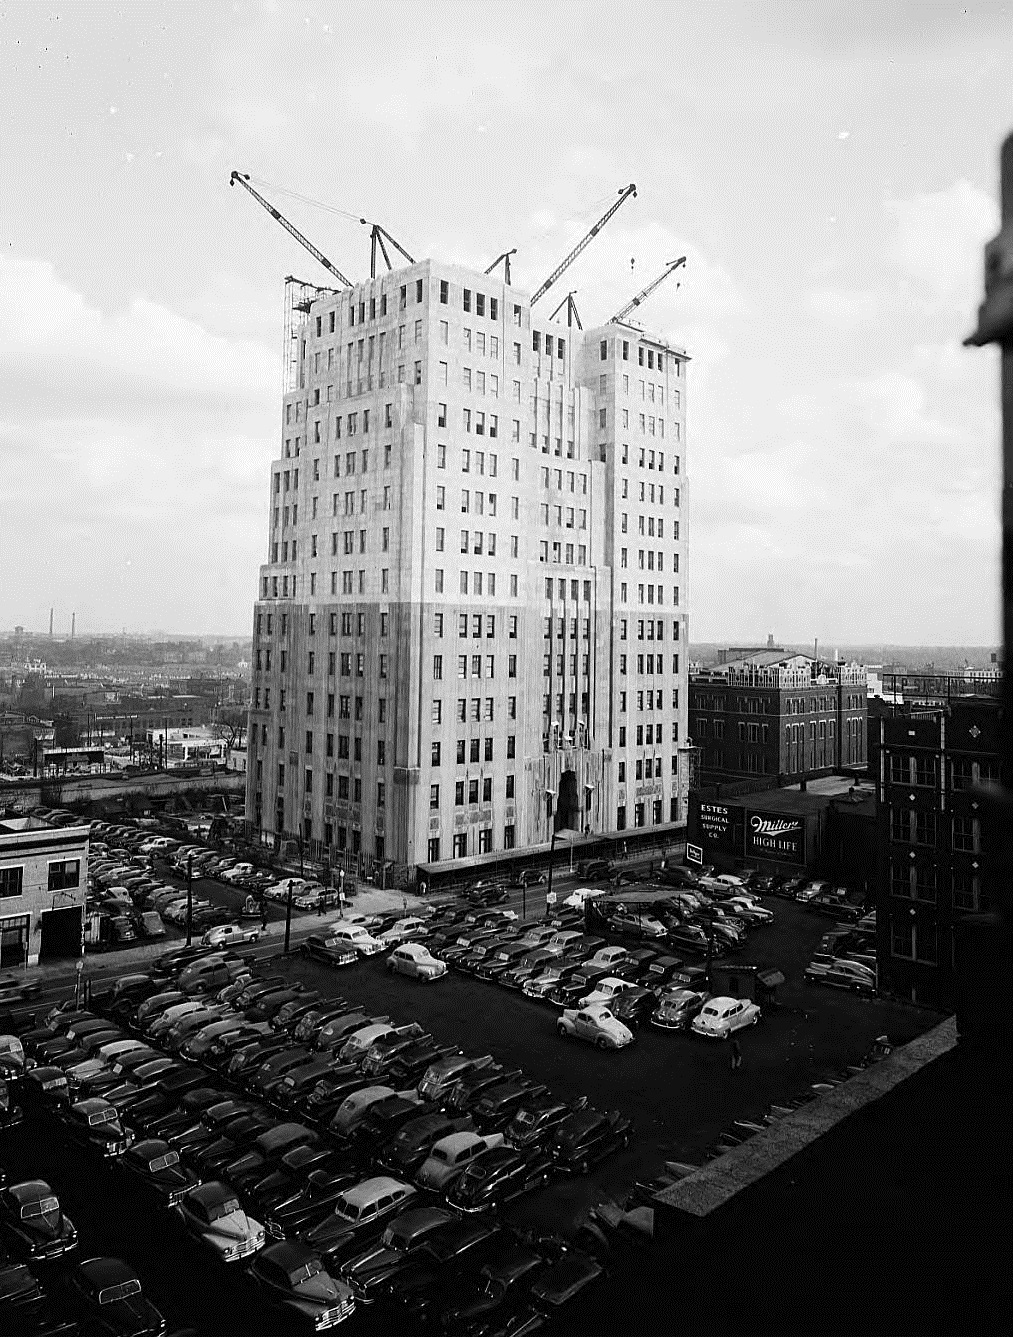 Southern Bell Telephone Building, March 3, 1947. The two colors show the original six floors along with the added eight floors constructed in the late '40s.